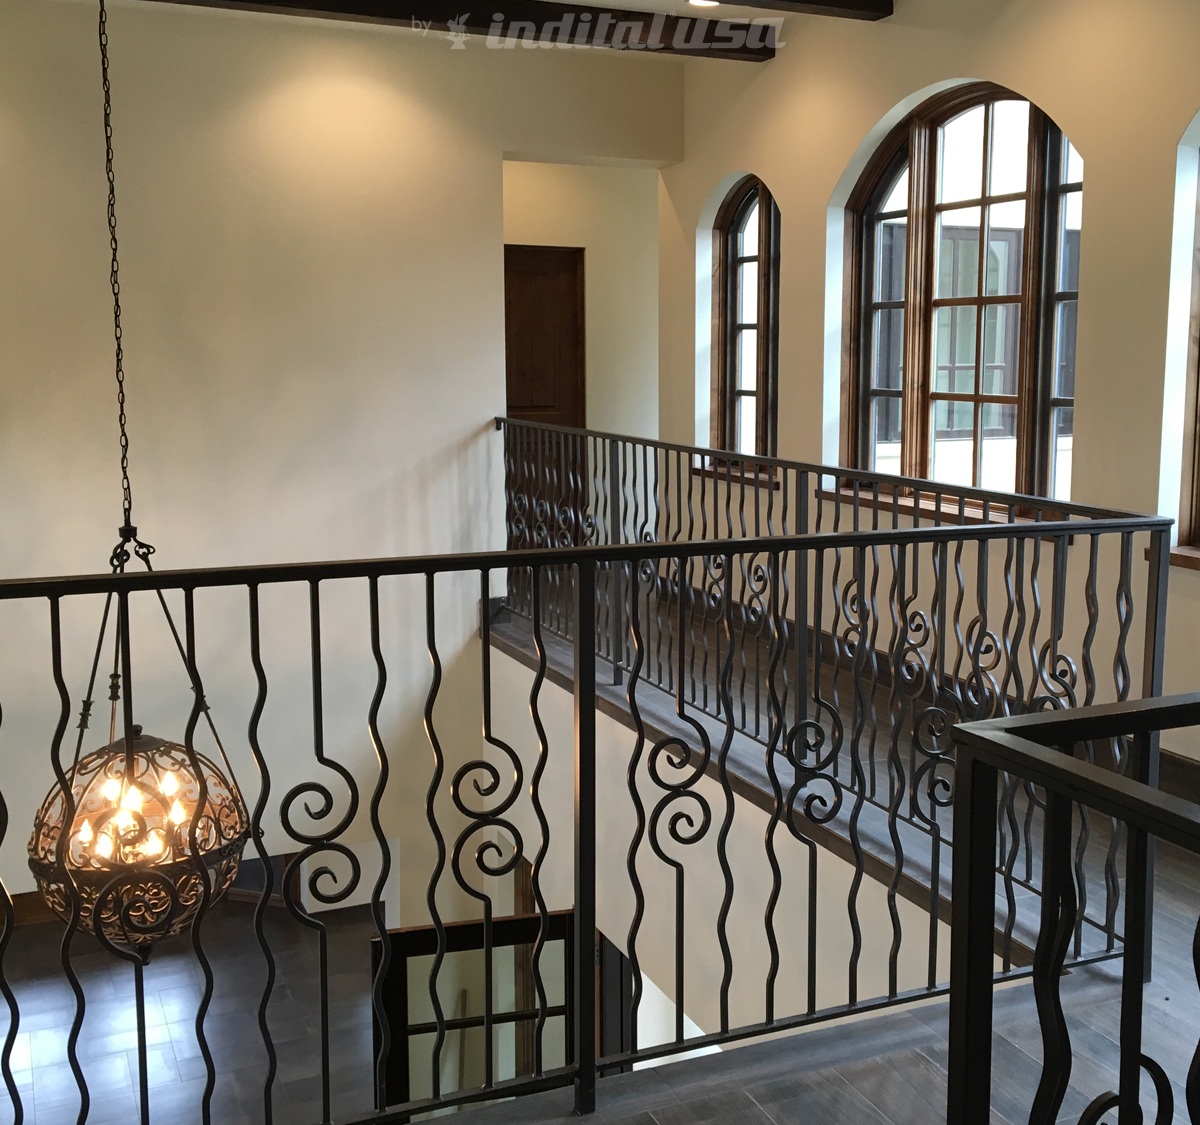 Wrought Iron Railing from Laurie C. Fisher Architect